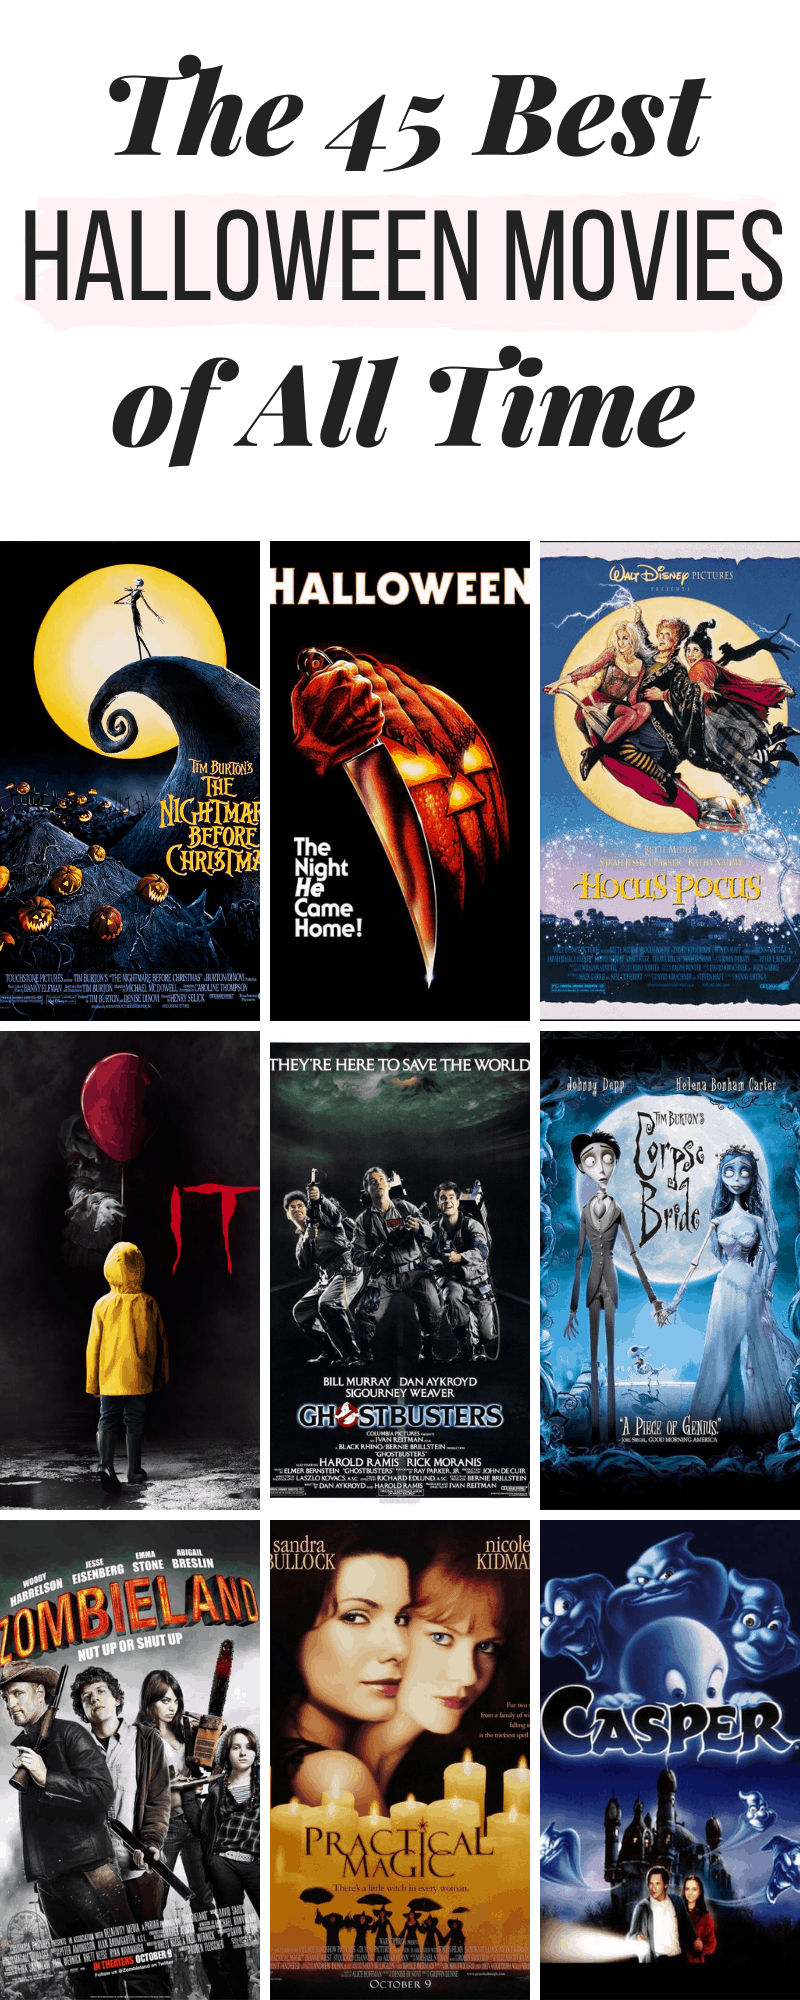 The 45 Best Halloween Movies Ever College Fashion